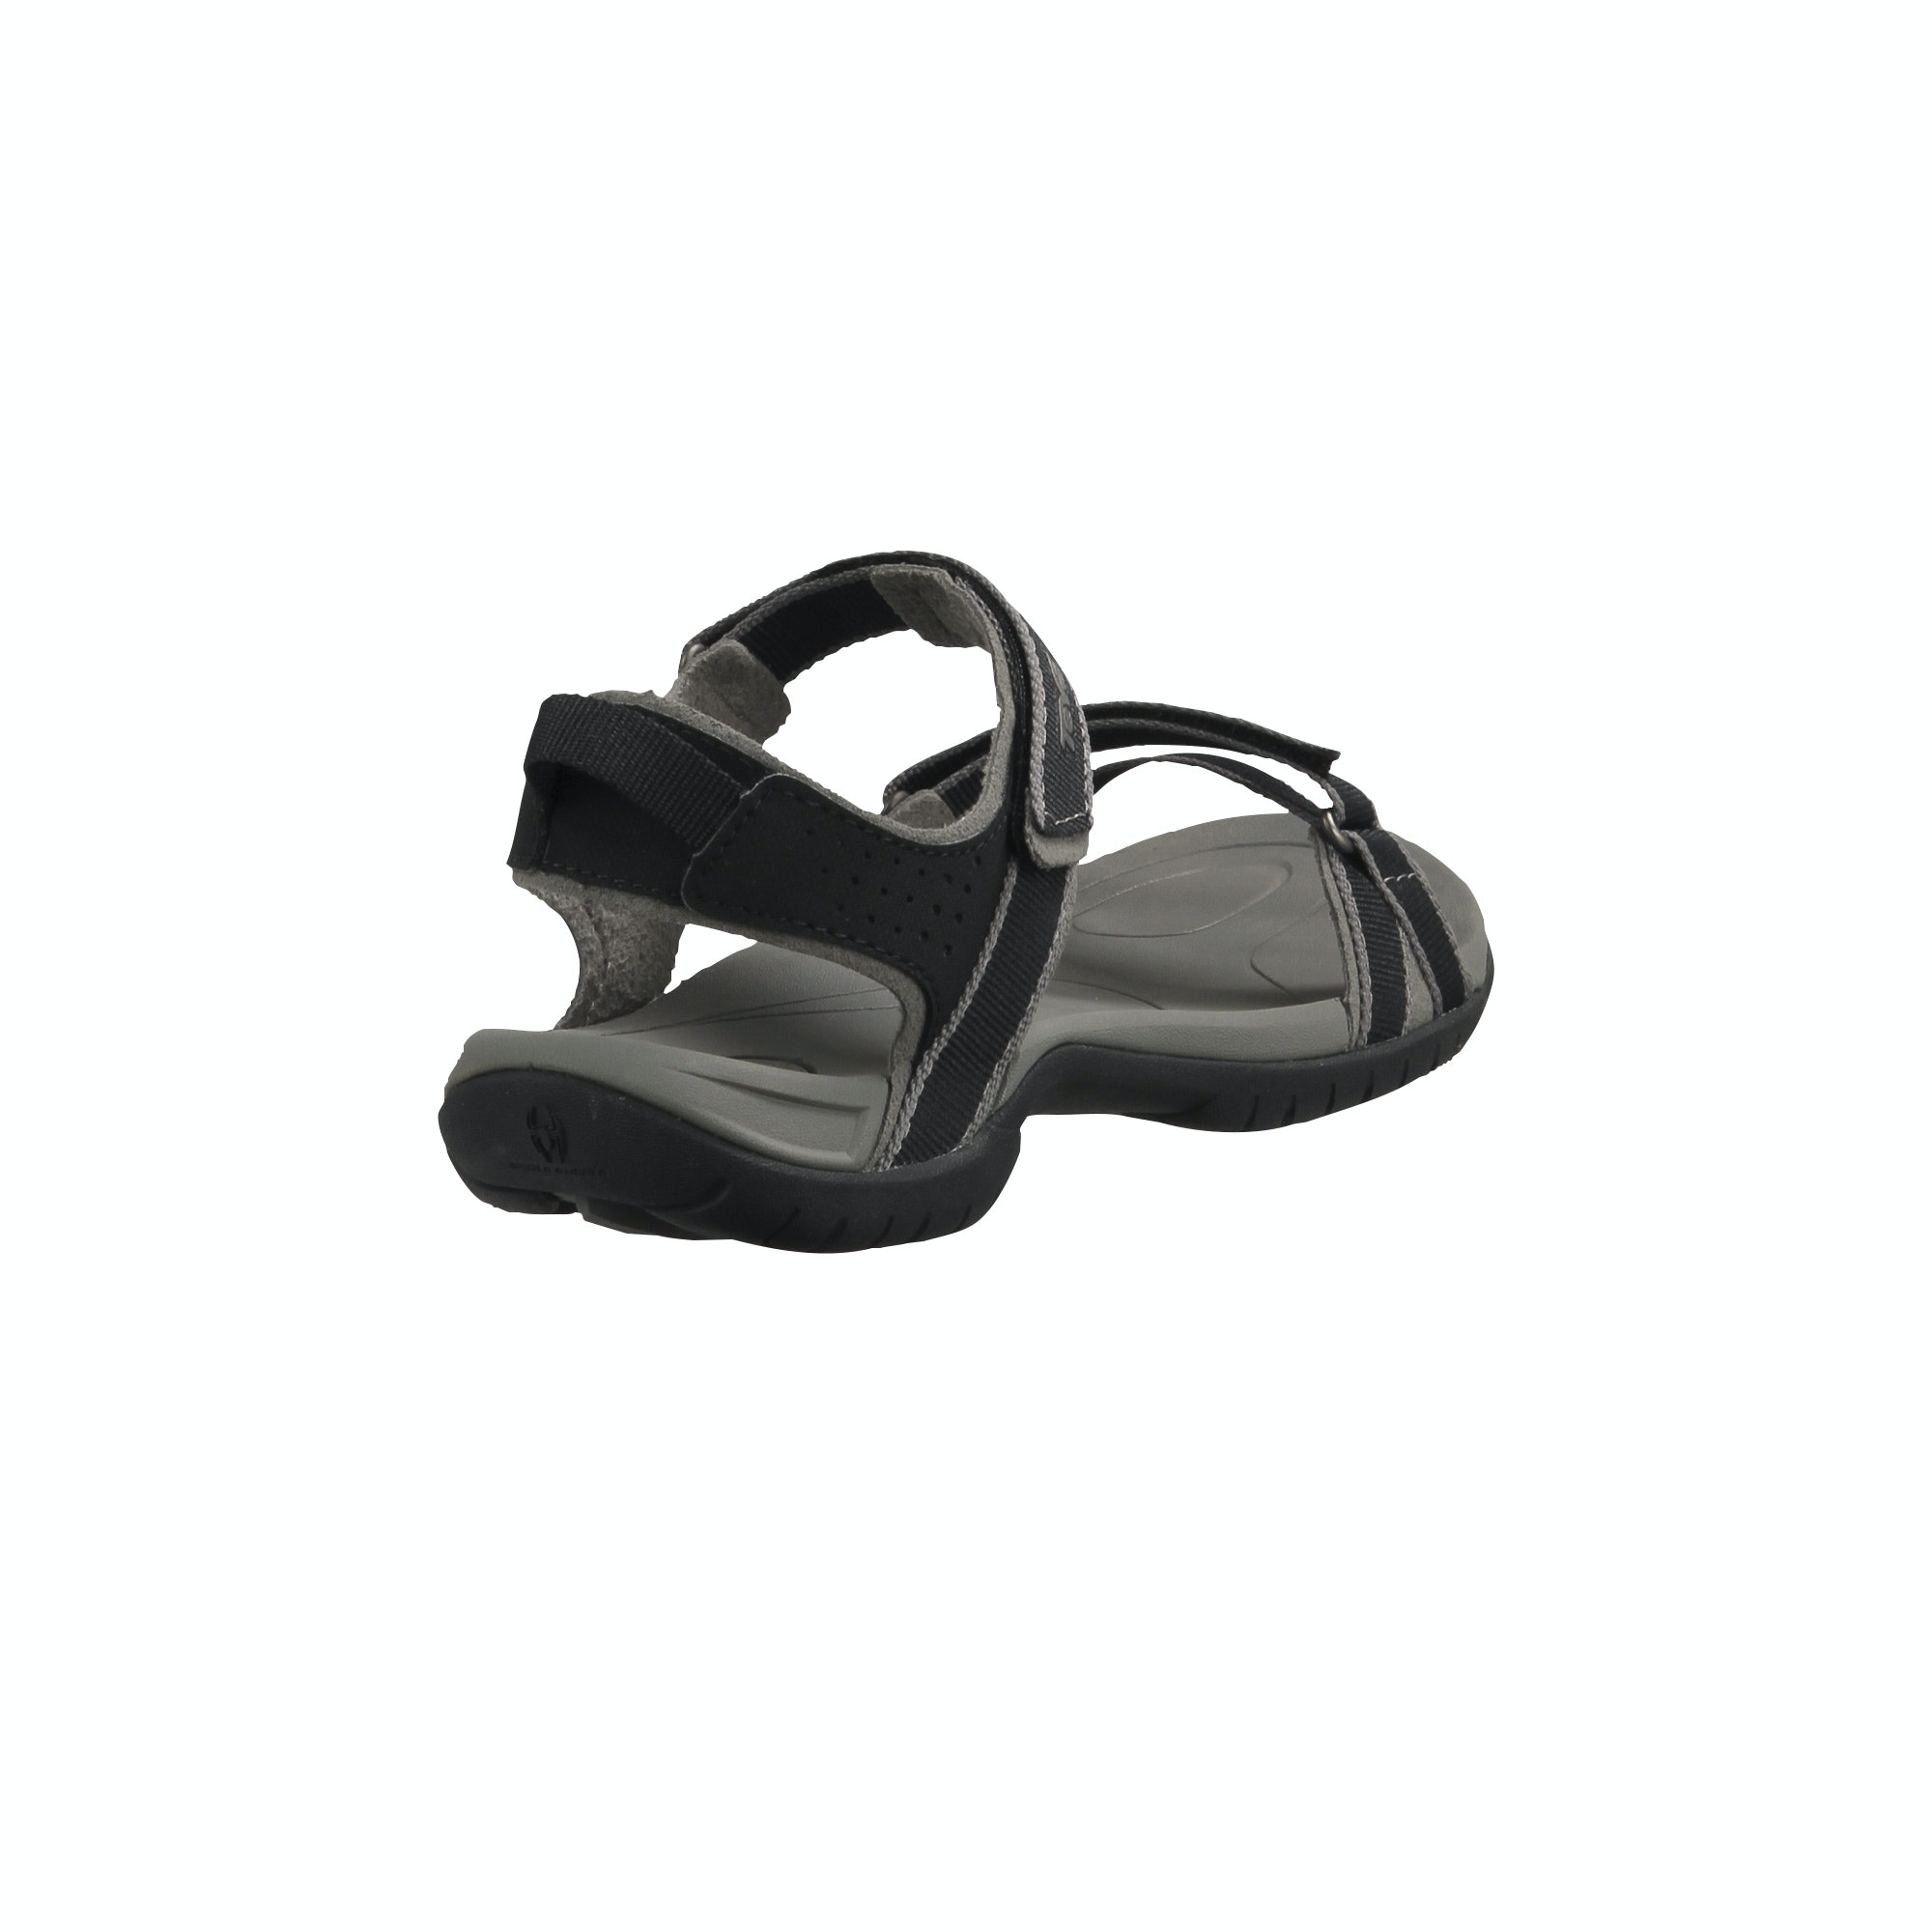 Teva Verra Women S Sandals Black